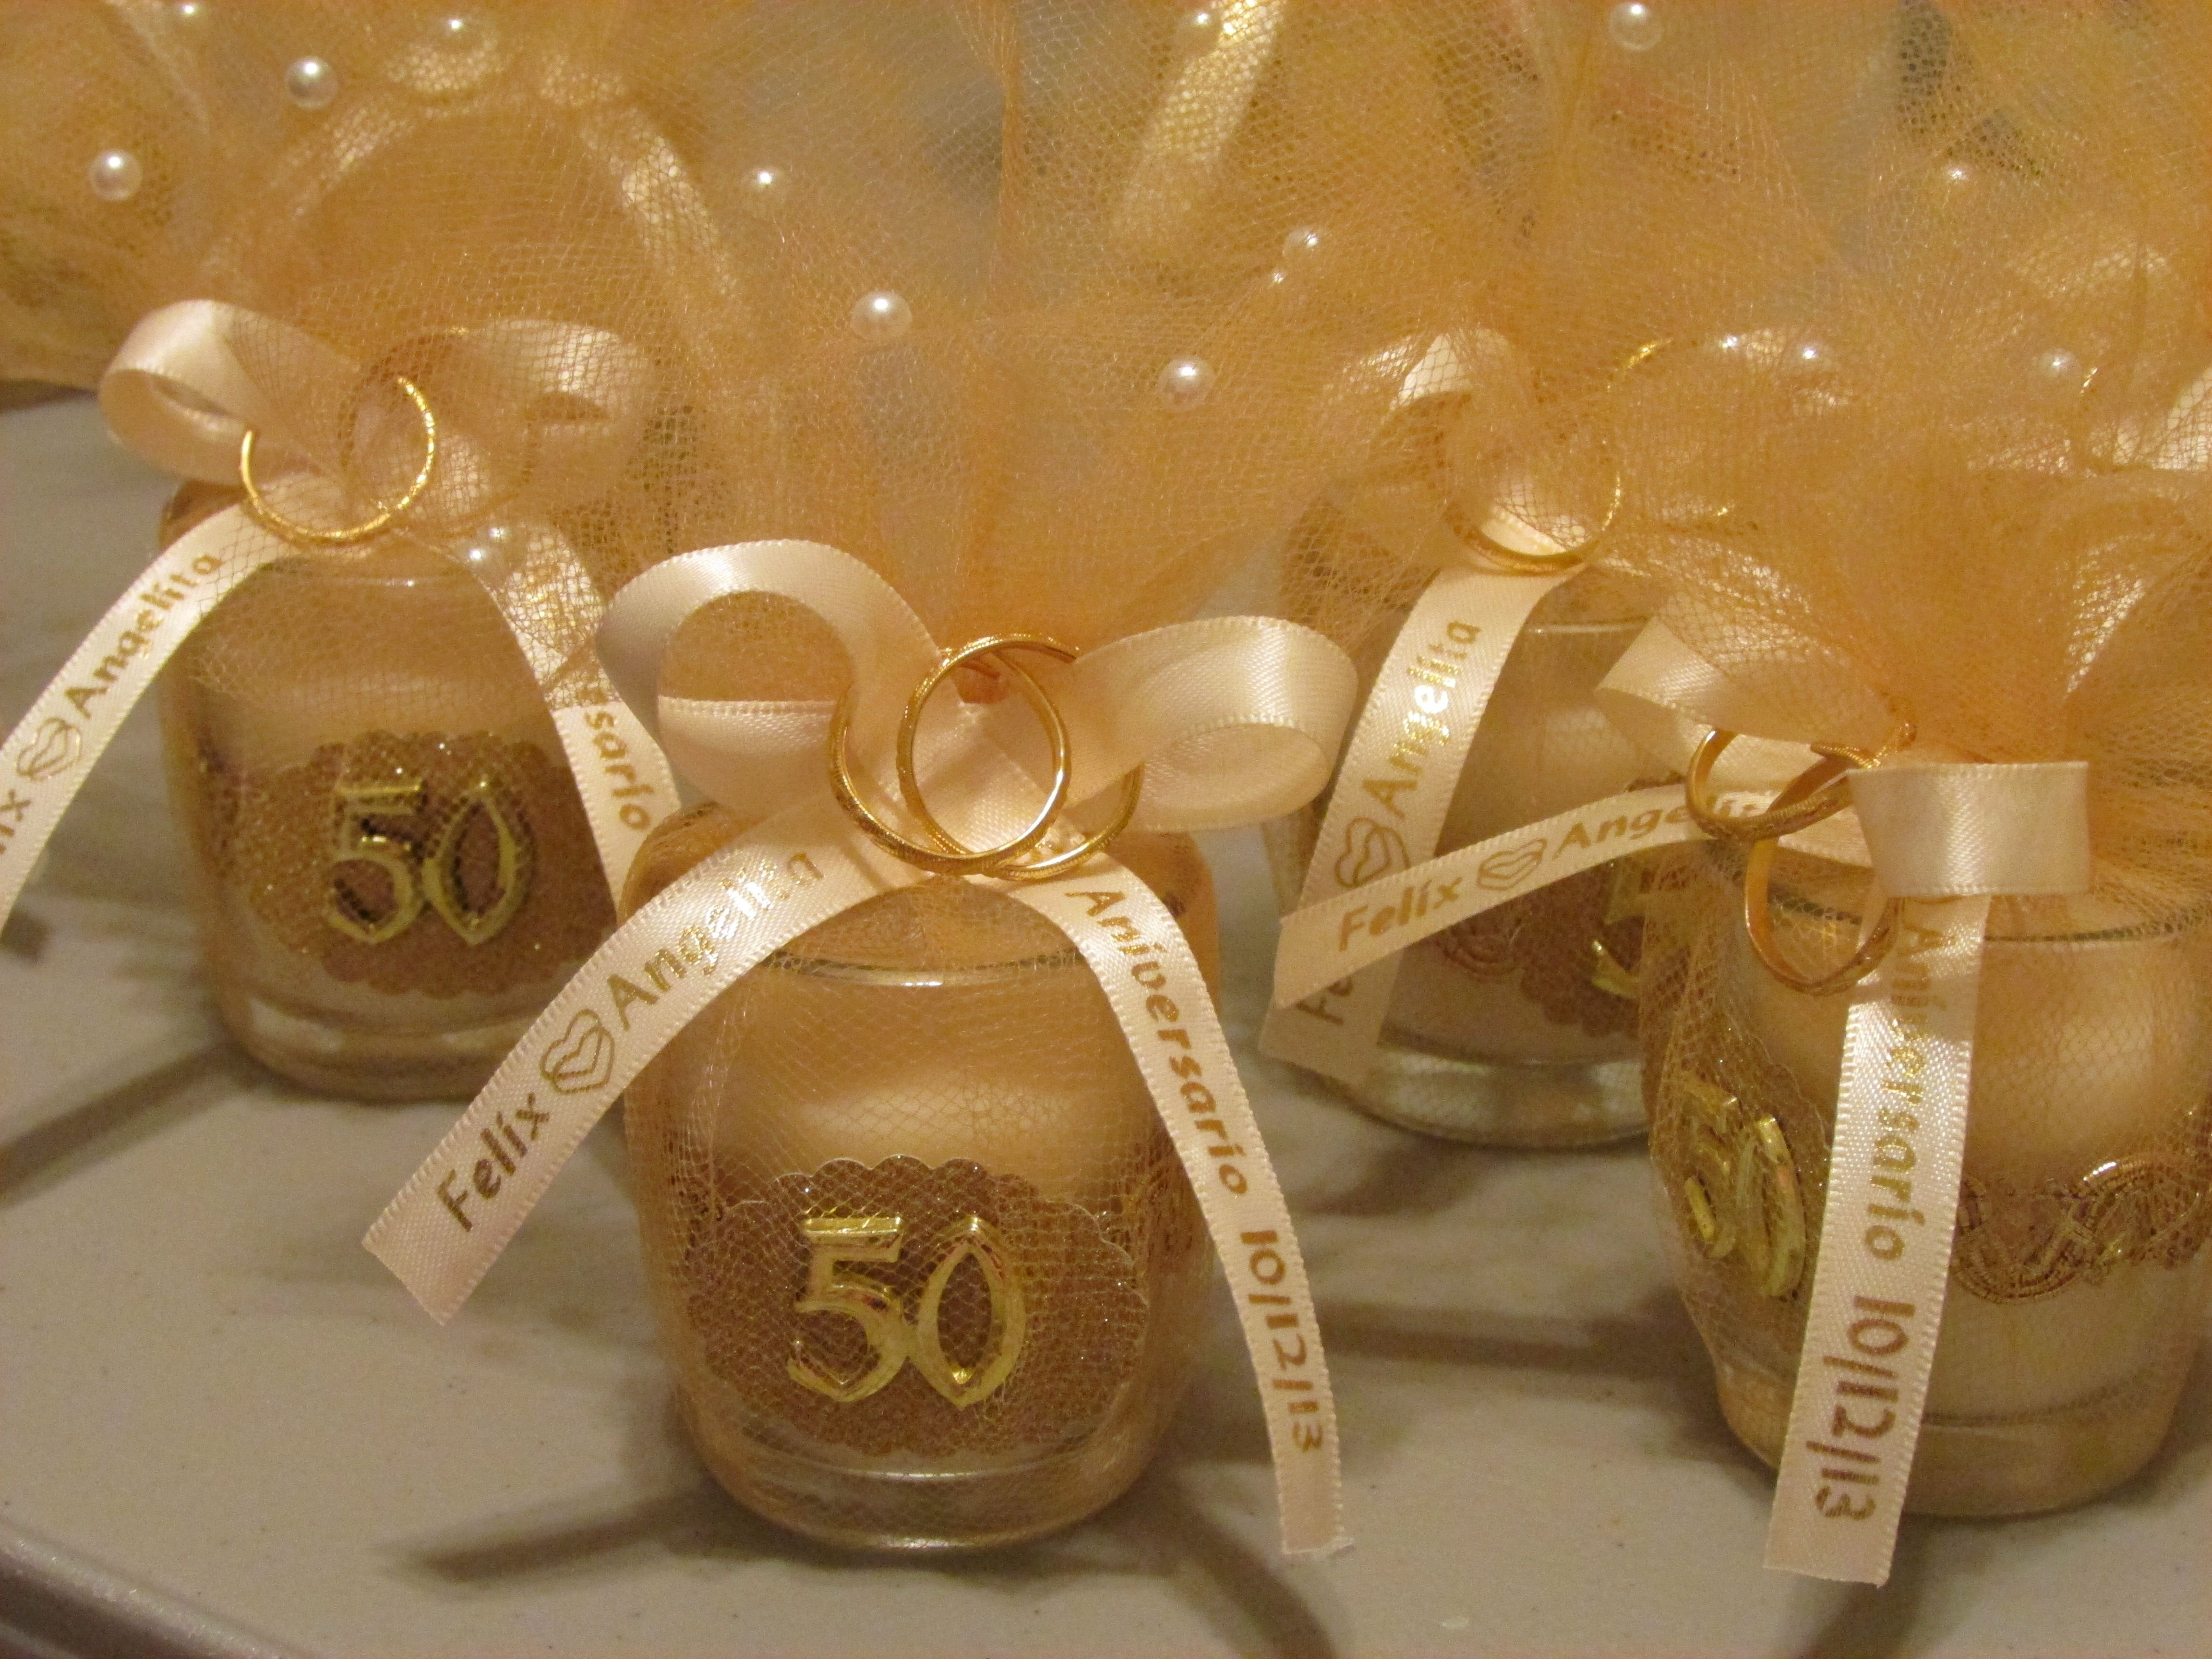 10 Famous 50Th Anniversary Party Favor Ideas 50th anniversary party favors diy my parents 50th anniversary diy